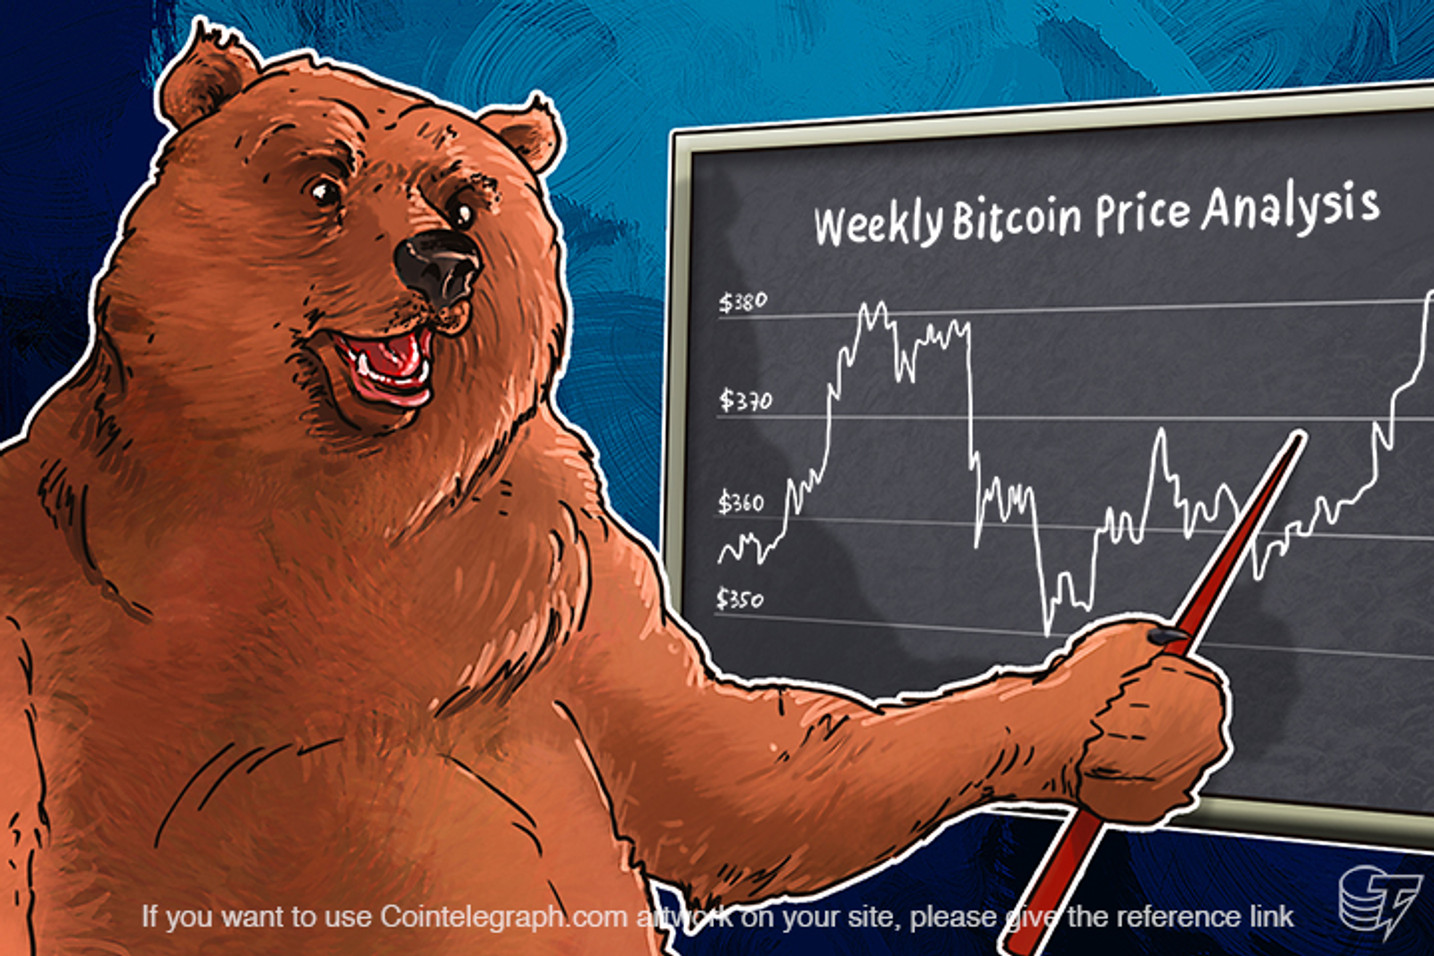 Weekly Bitcoin Price Analysis: Standoff Between Bulls and Bears Will Continue